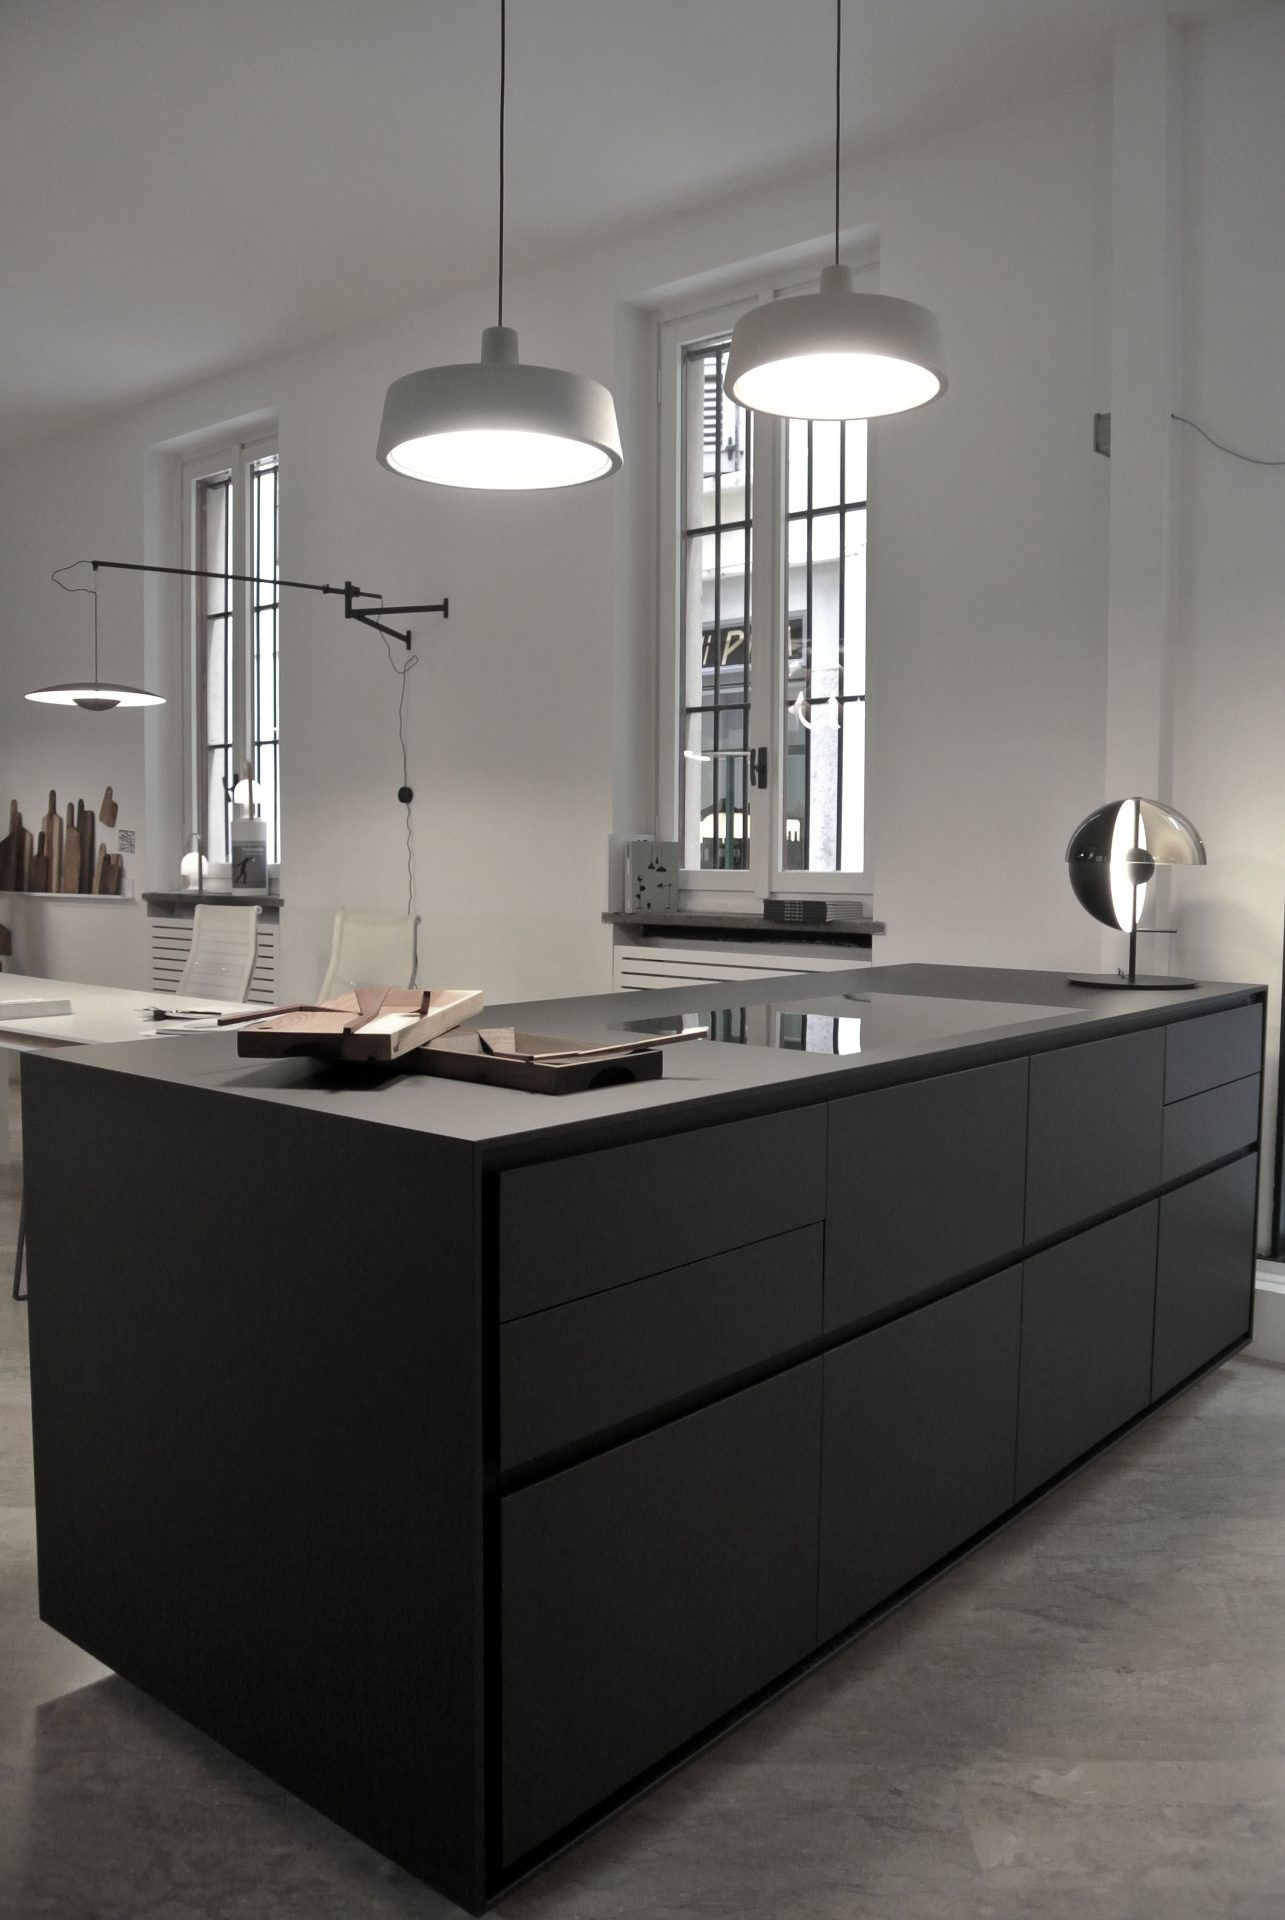 Polaris - Abet Laminati | Keuken | Pinterest | Kitchens